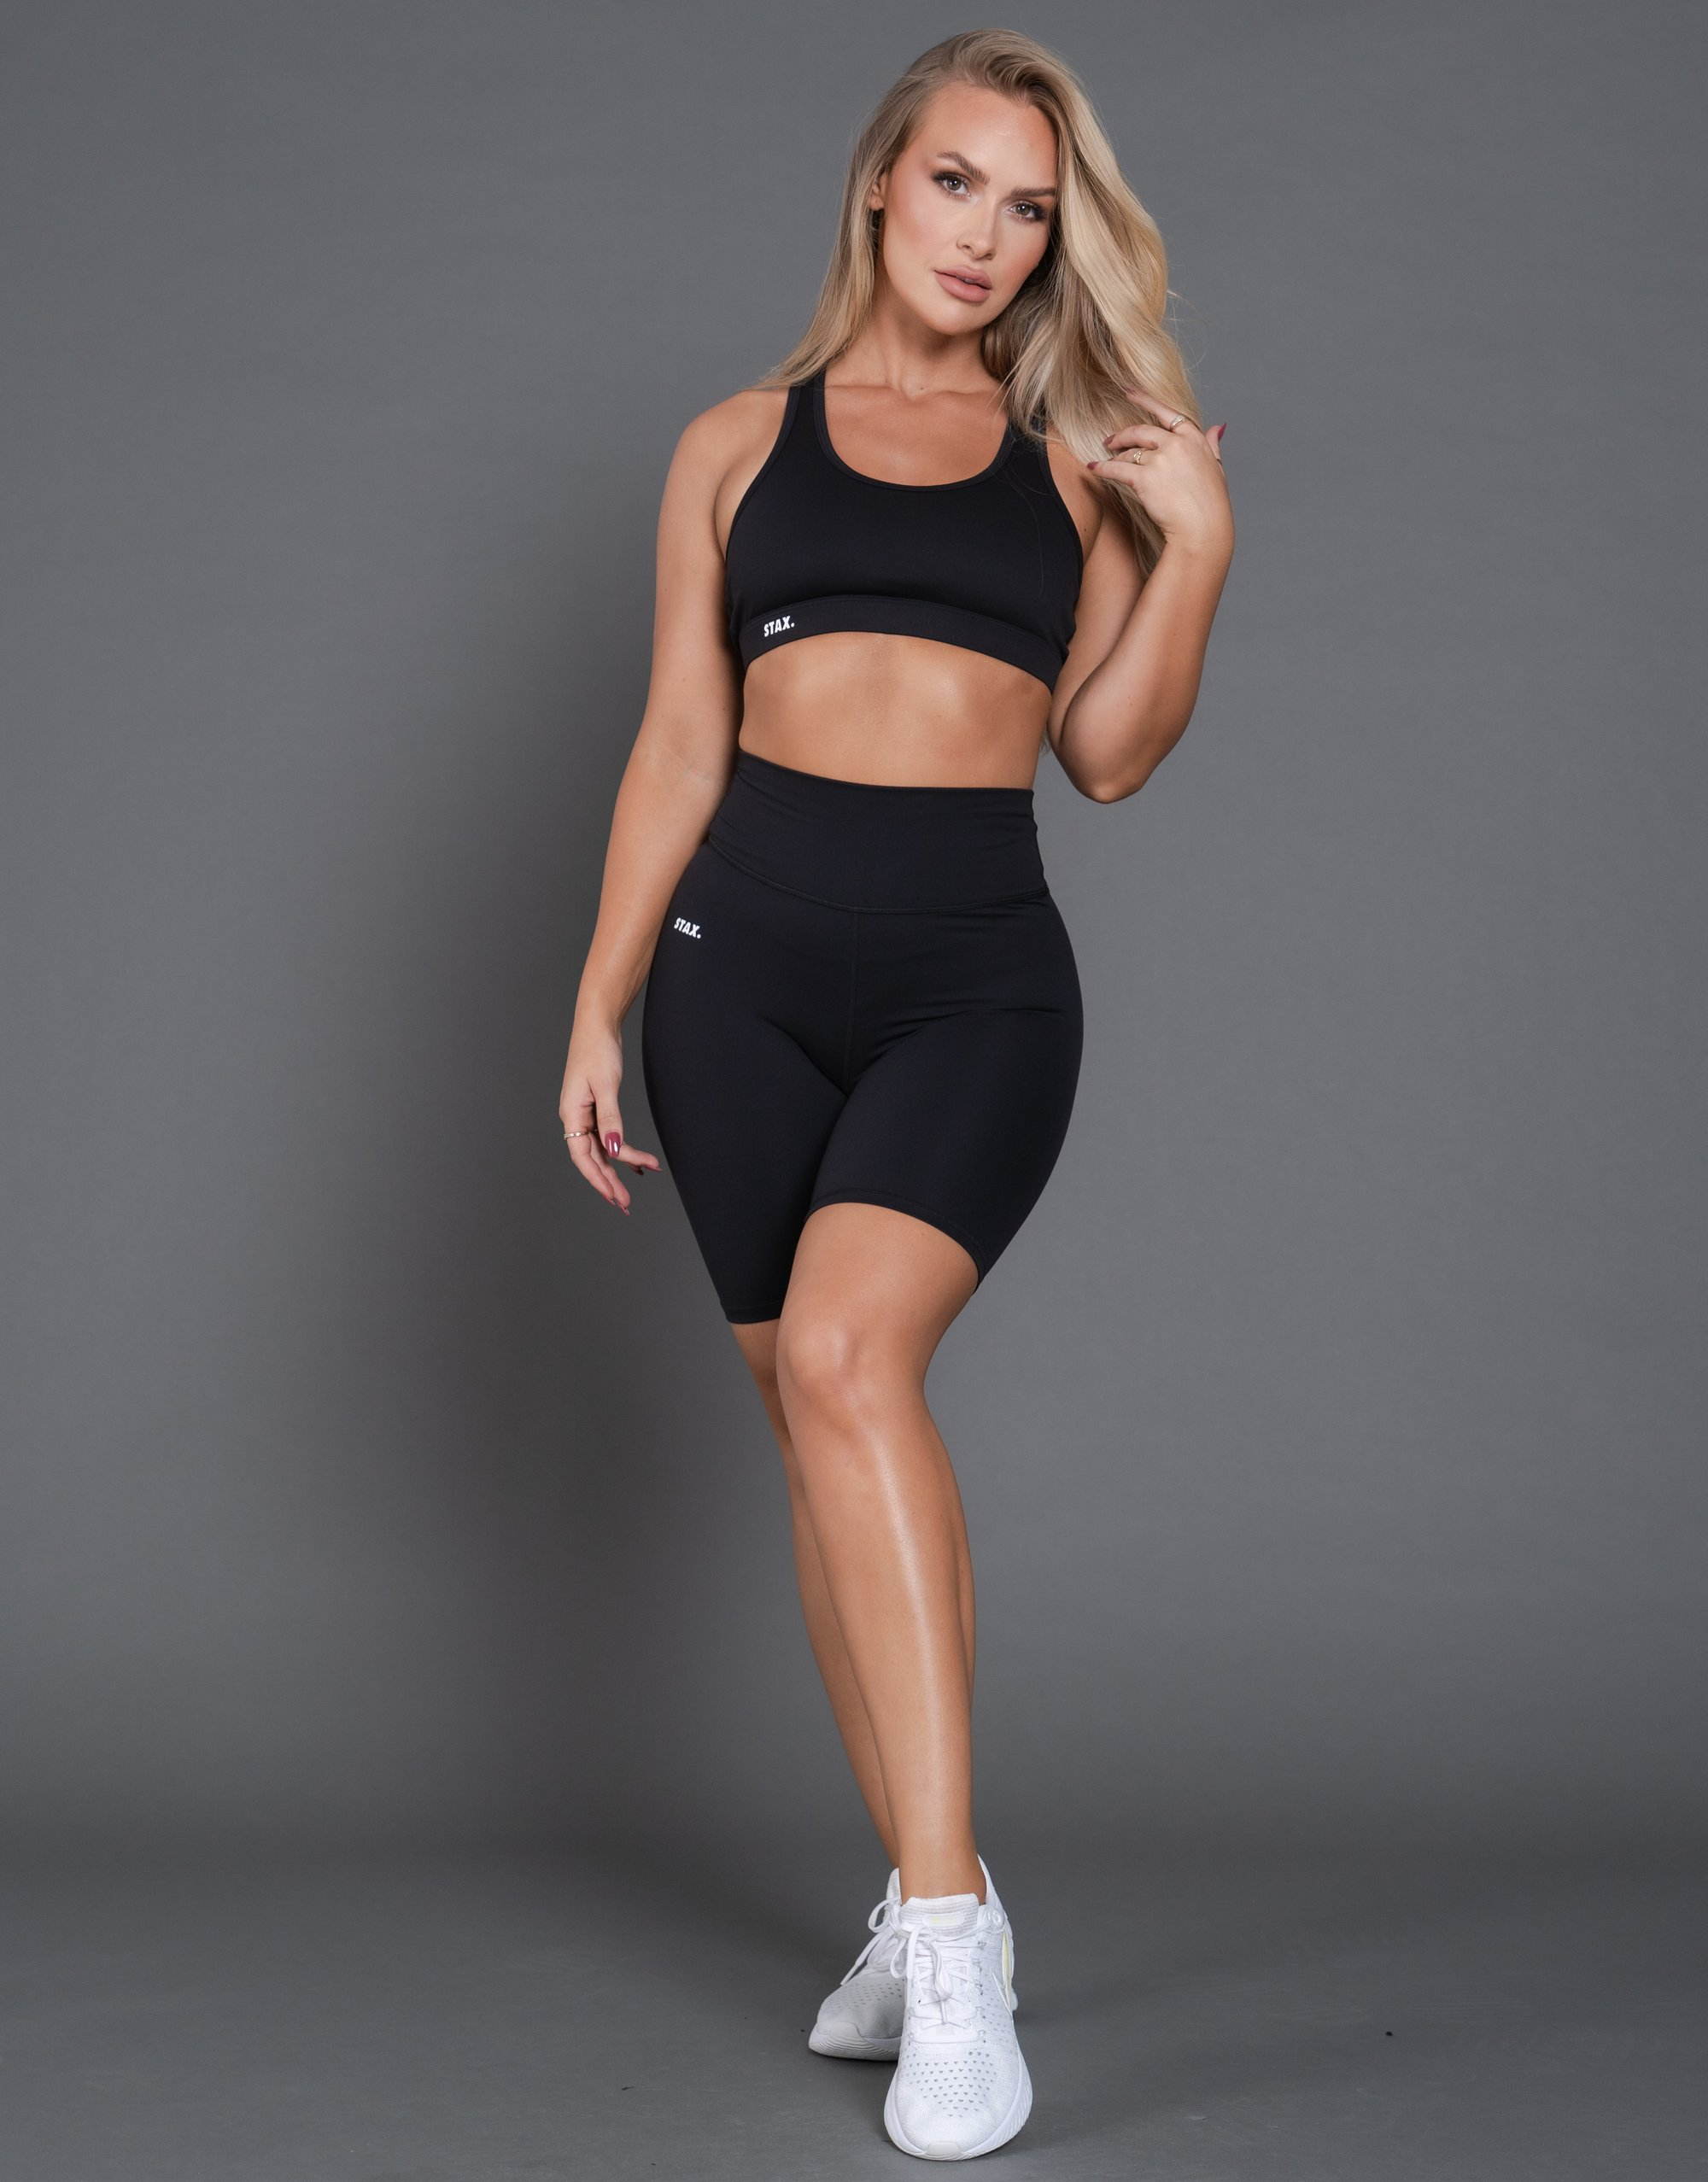 STAX. BEST BLACK BIKE SHORTS by Nike, available on stax.com.au for $49 Olivia Culpo Shorts Exact Product